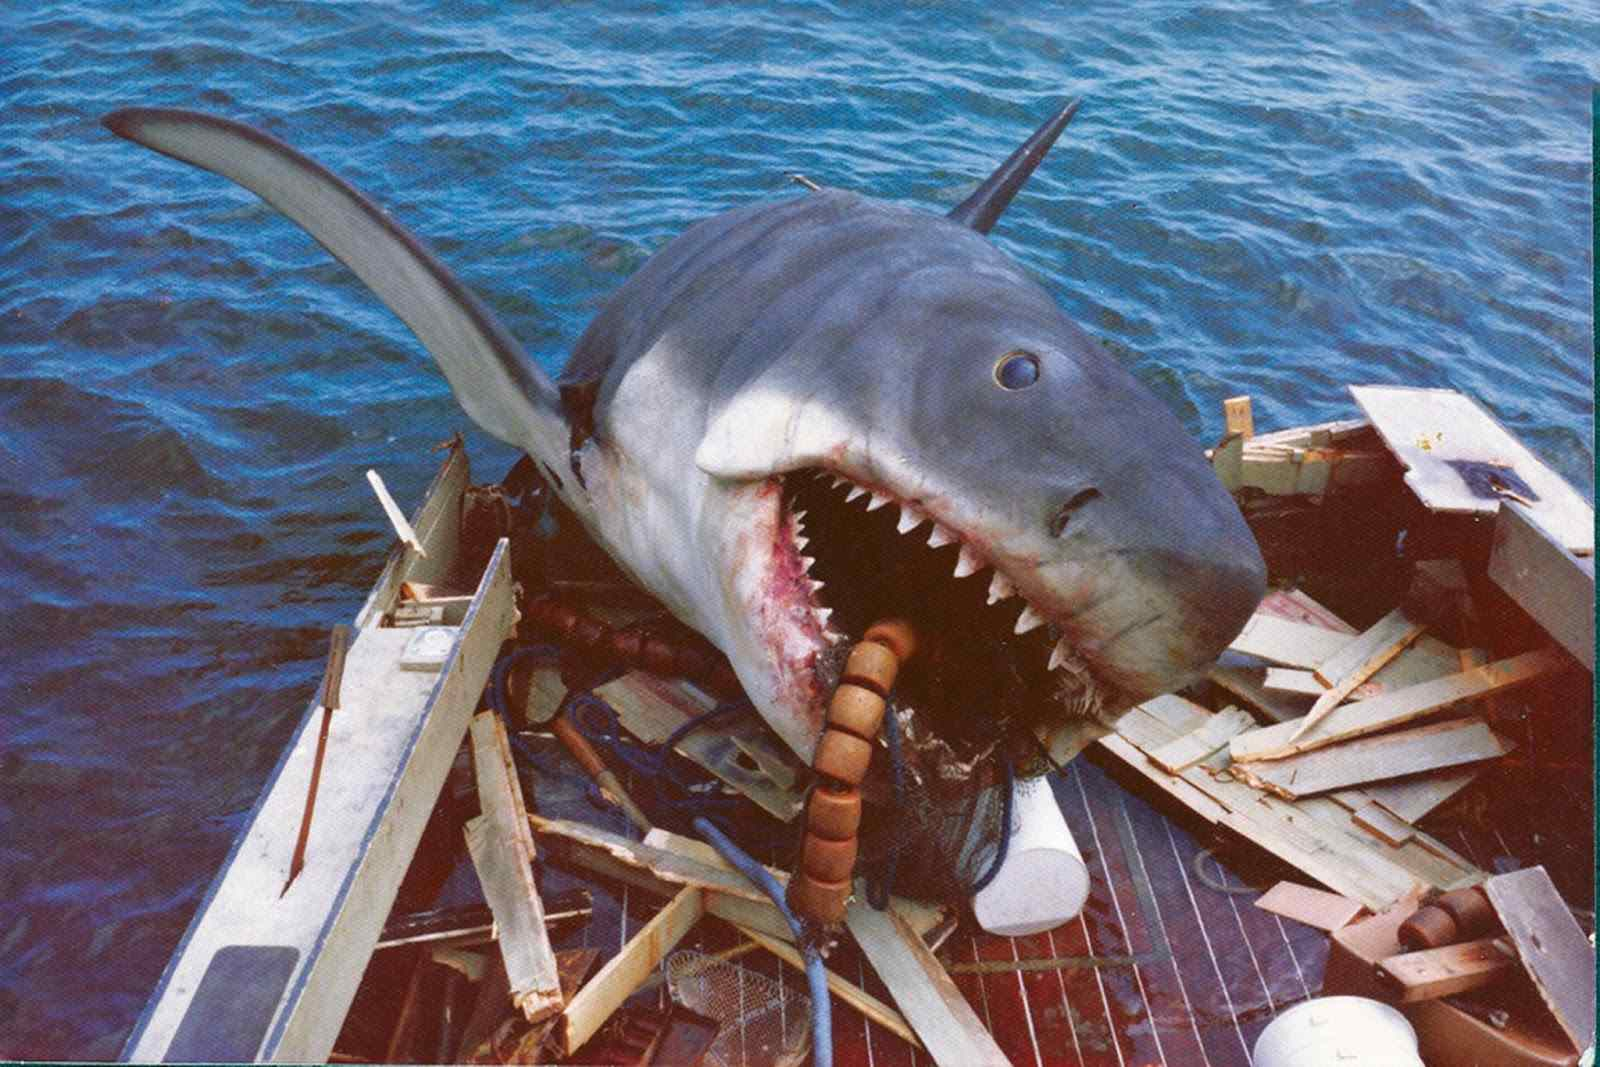 The movie poster for Jaws directed by Steven Spielberg.